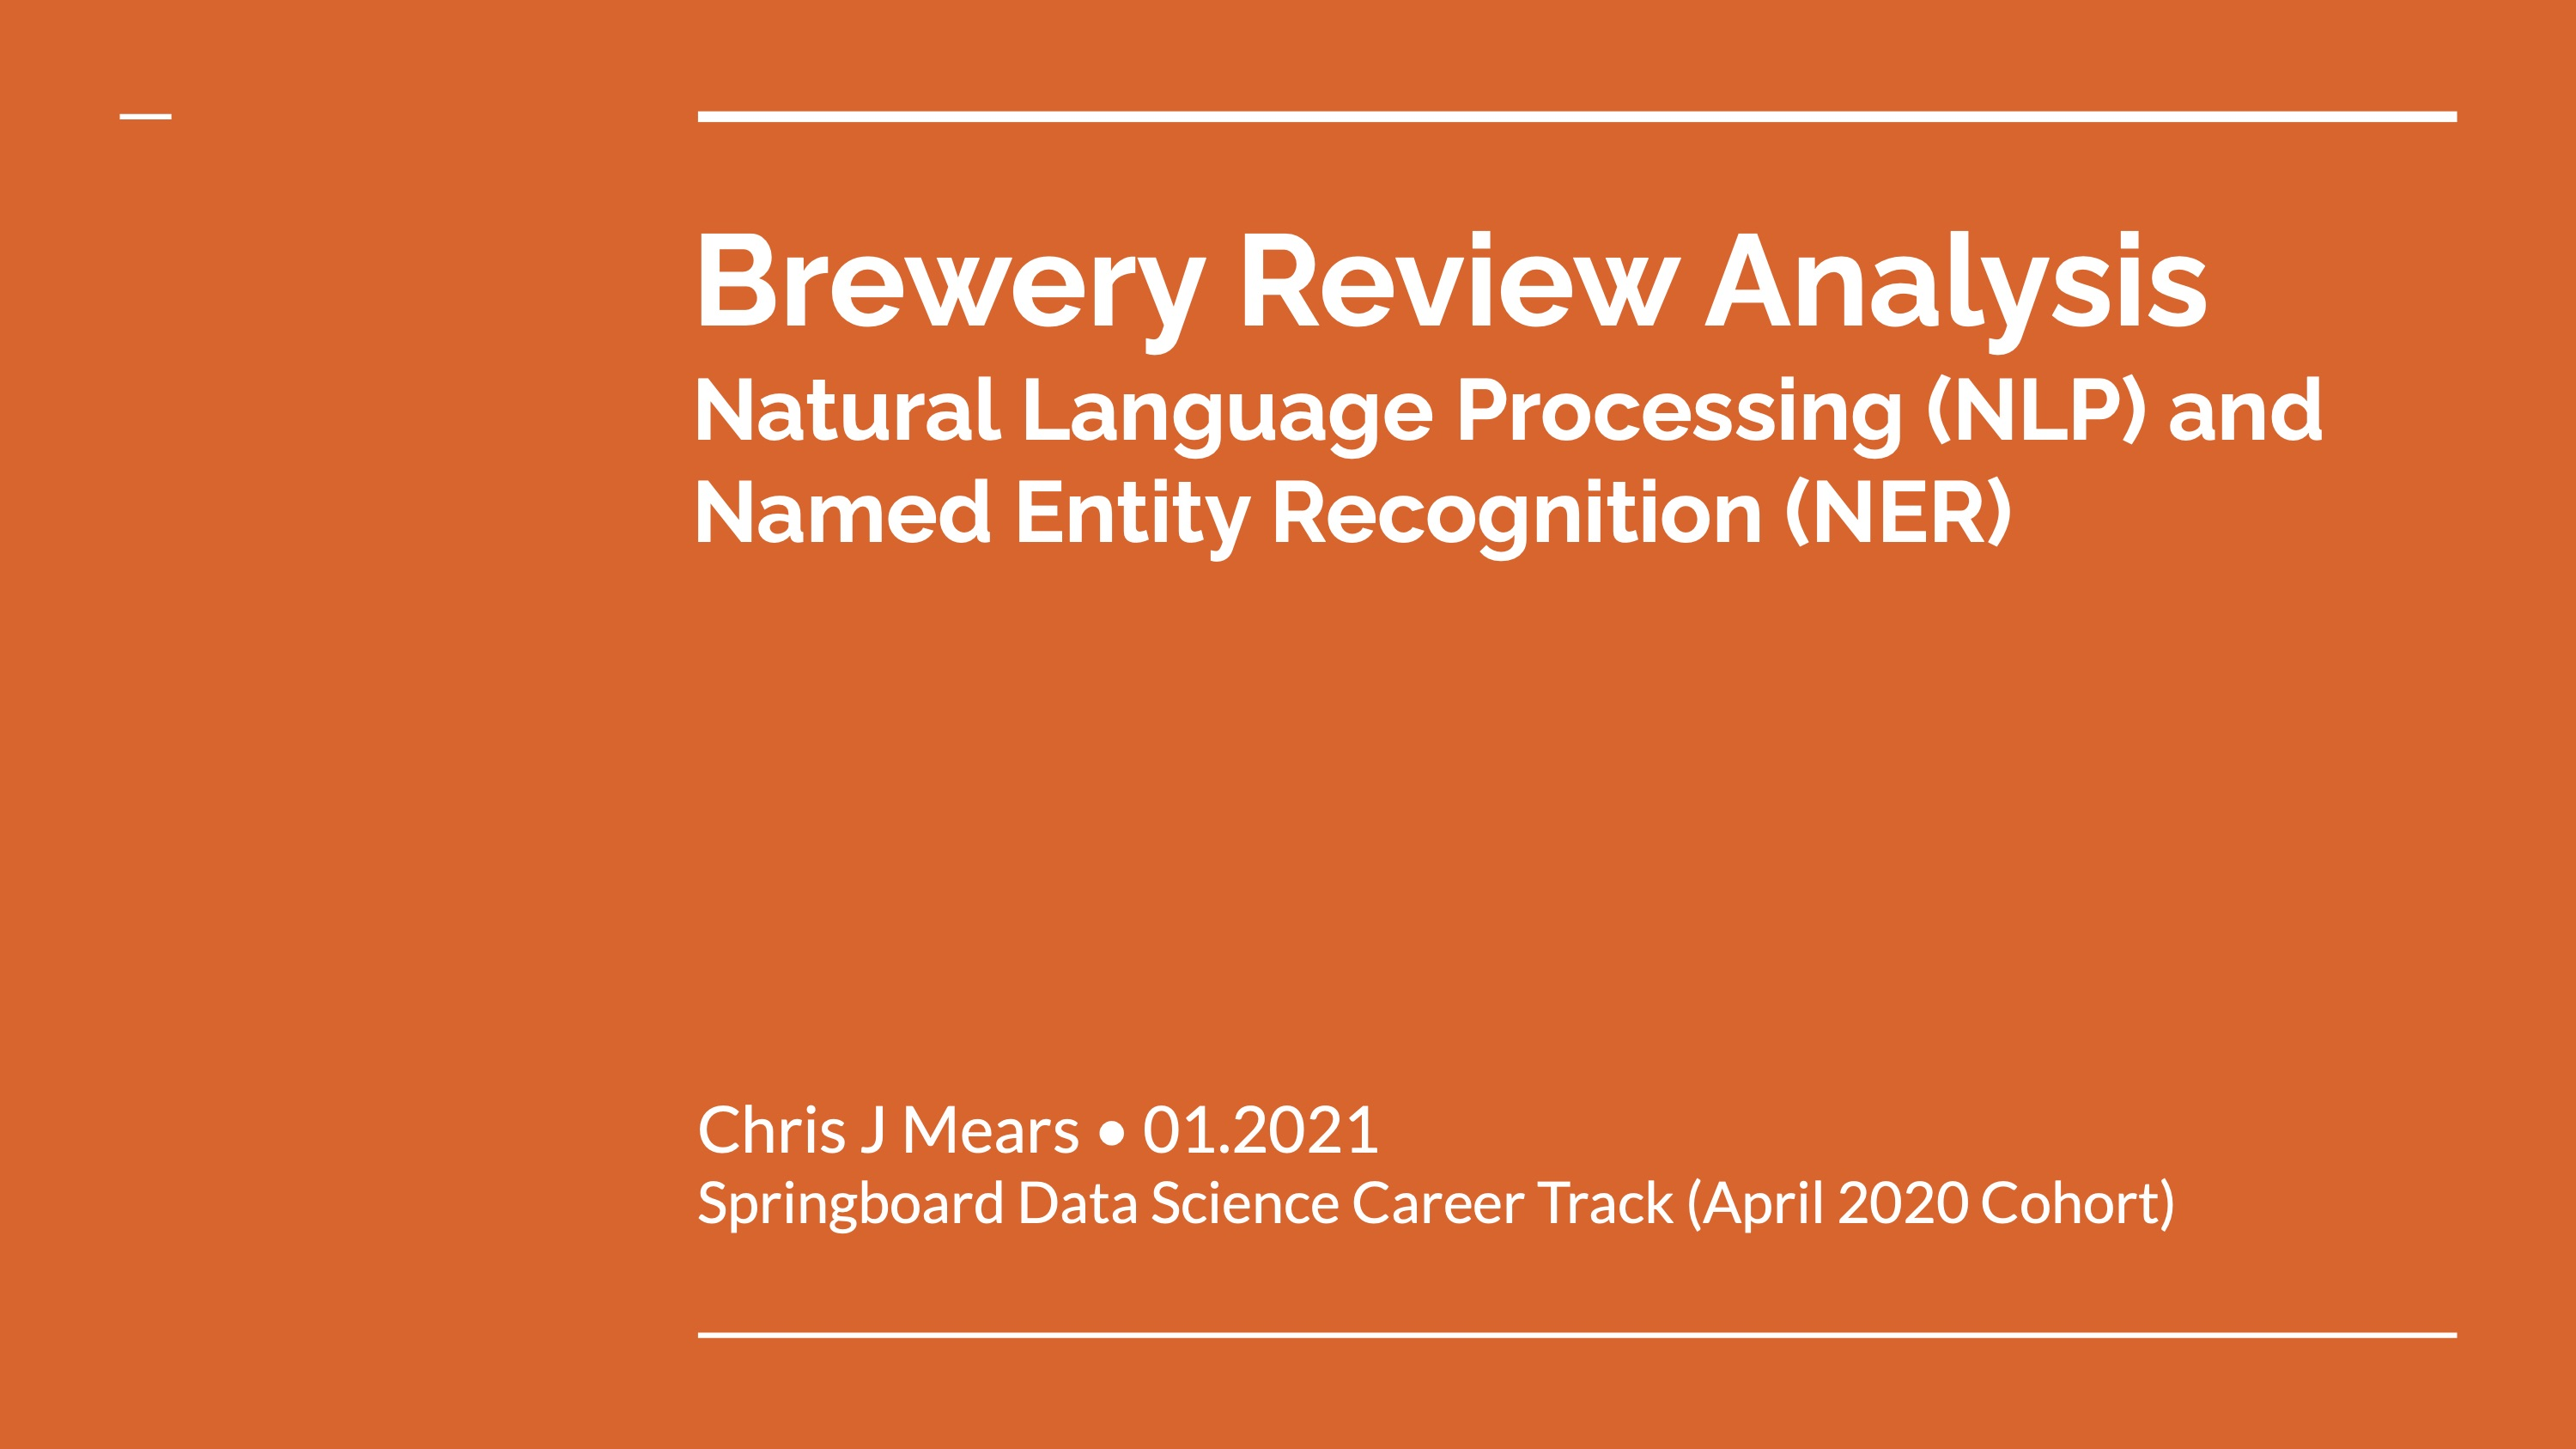 Brewery Review Analysis with NLP and NER title slide